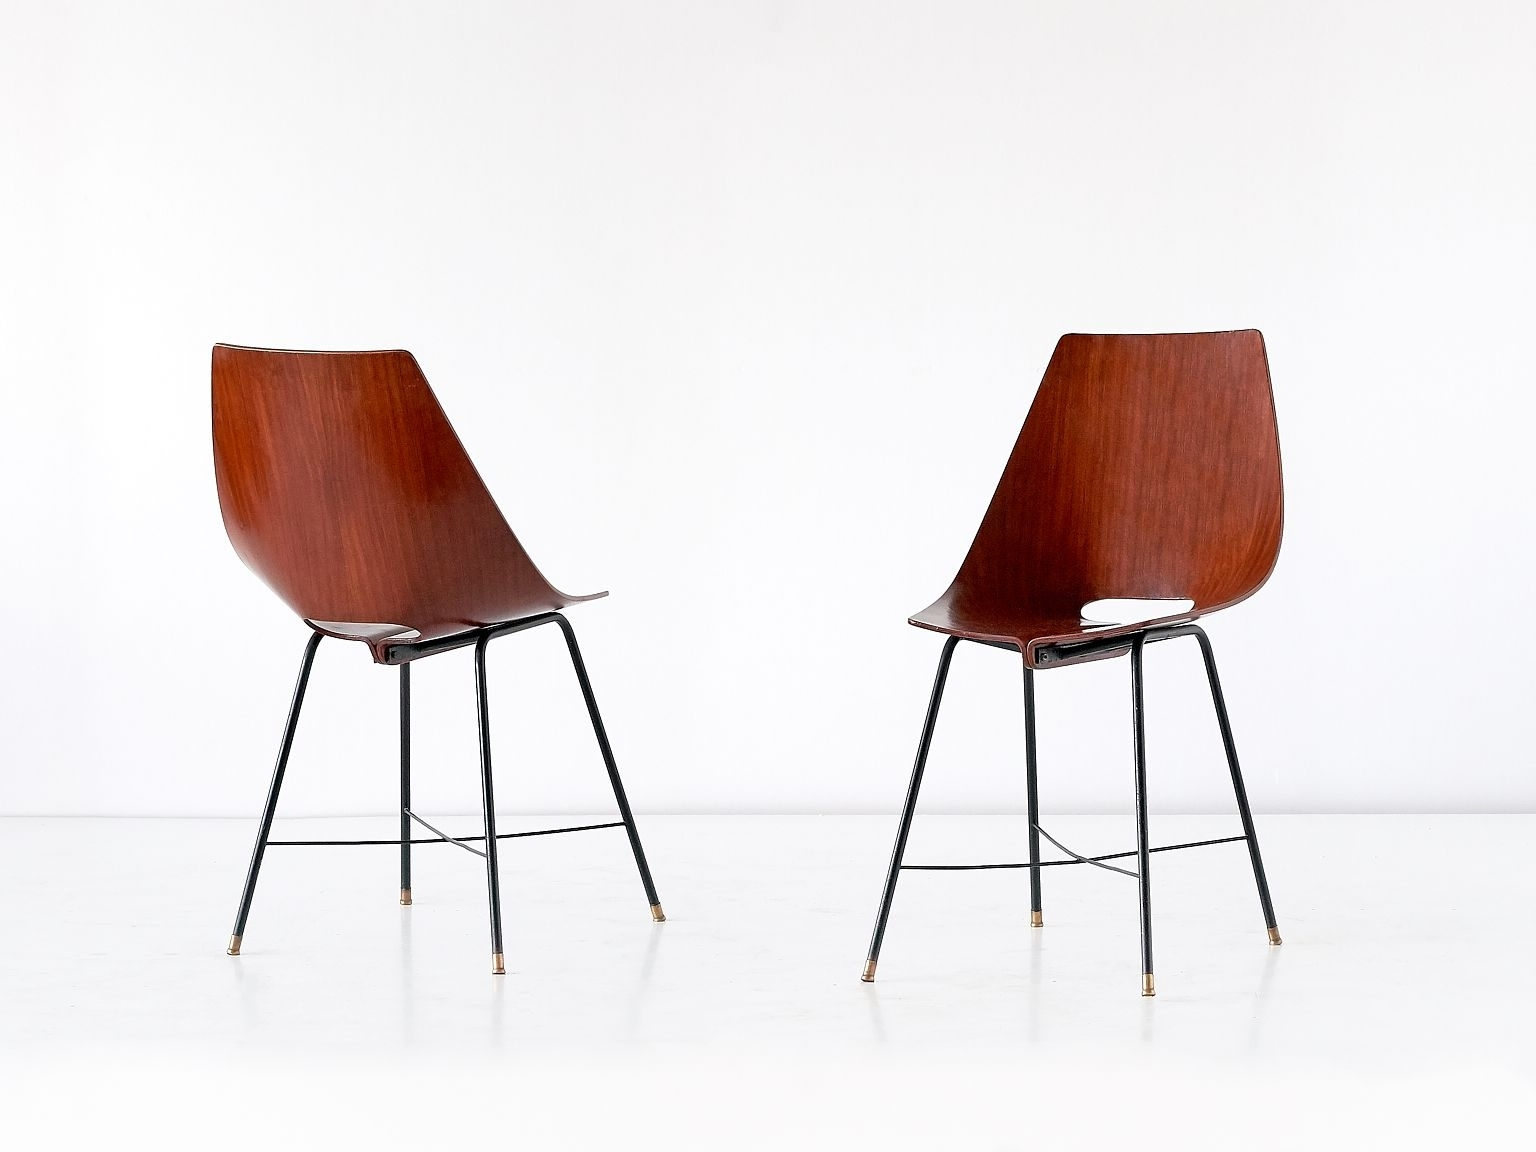 Widely Used Plywood & Metal Brown Dining Chairs For Italian 127 B Plywood Dining Chairs From Societá Compensati Curvati (View 13 of 20)